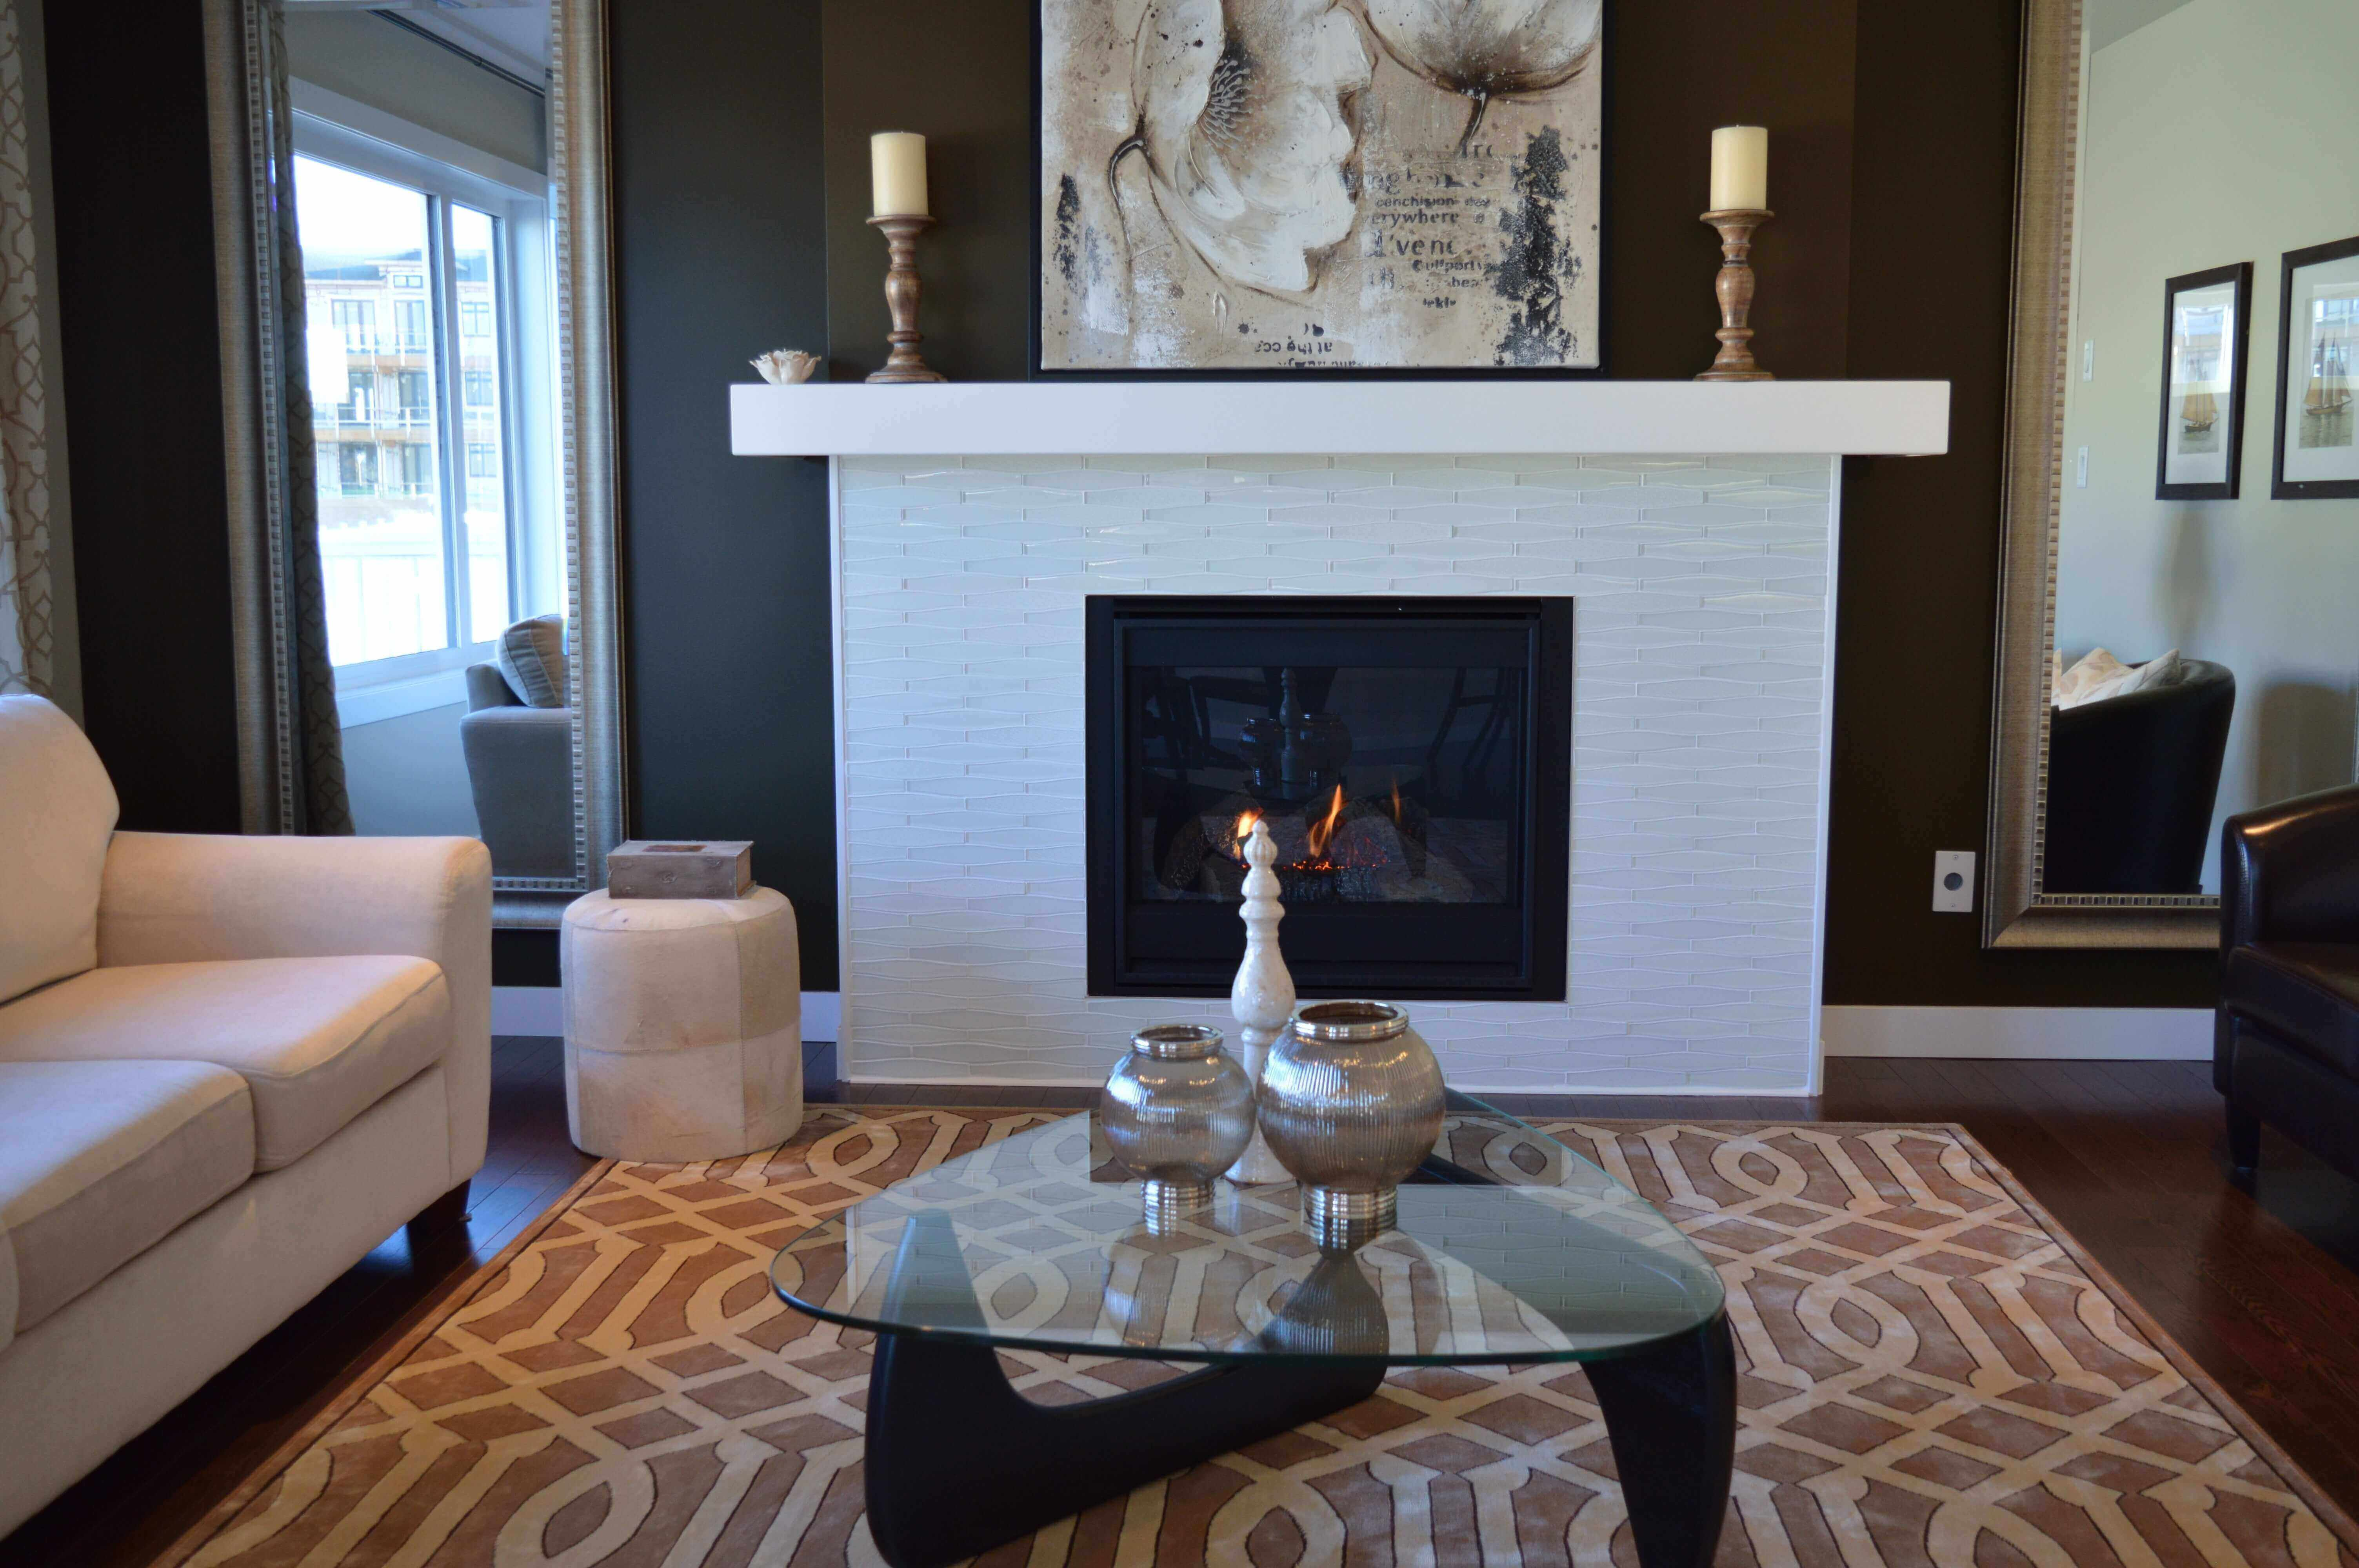 Low maintenance u2013 One major reason homeowners opt for gas fireplaces over woodburning fireplaces is that theyu0027re so incredibly easy to maintain. & Gas Fireplaces - Waldorf MD - Tri County Hearth u0026 Patio Center